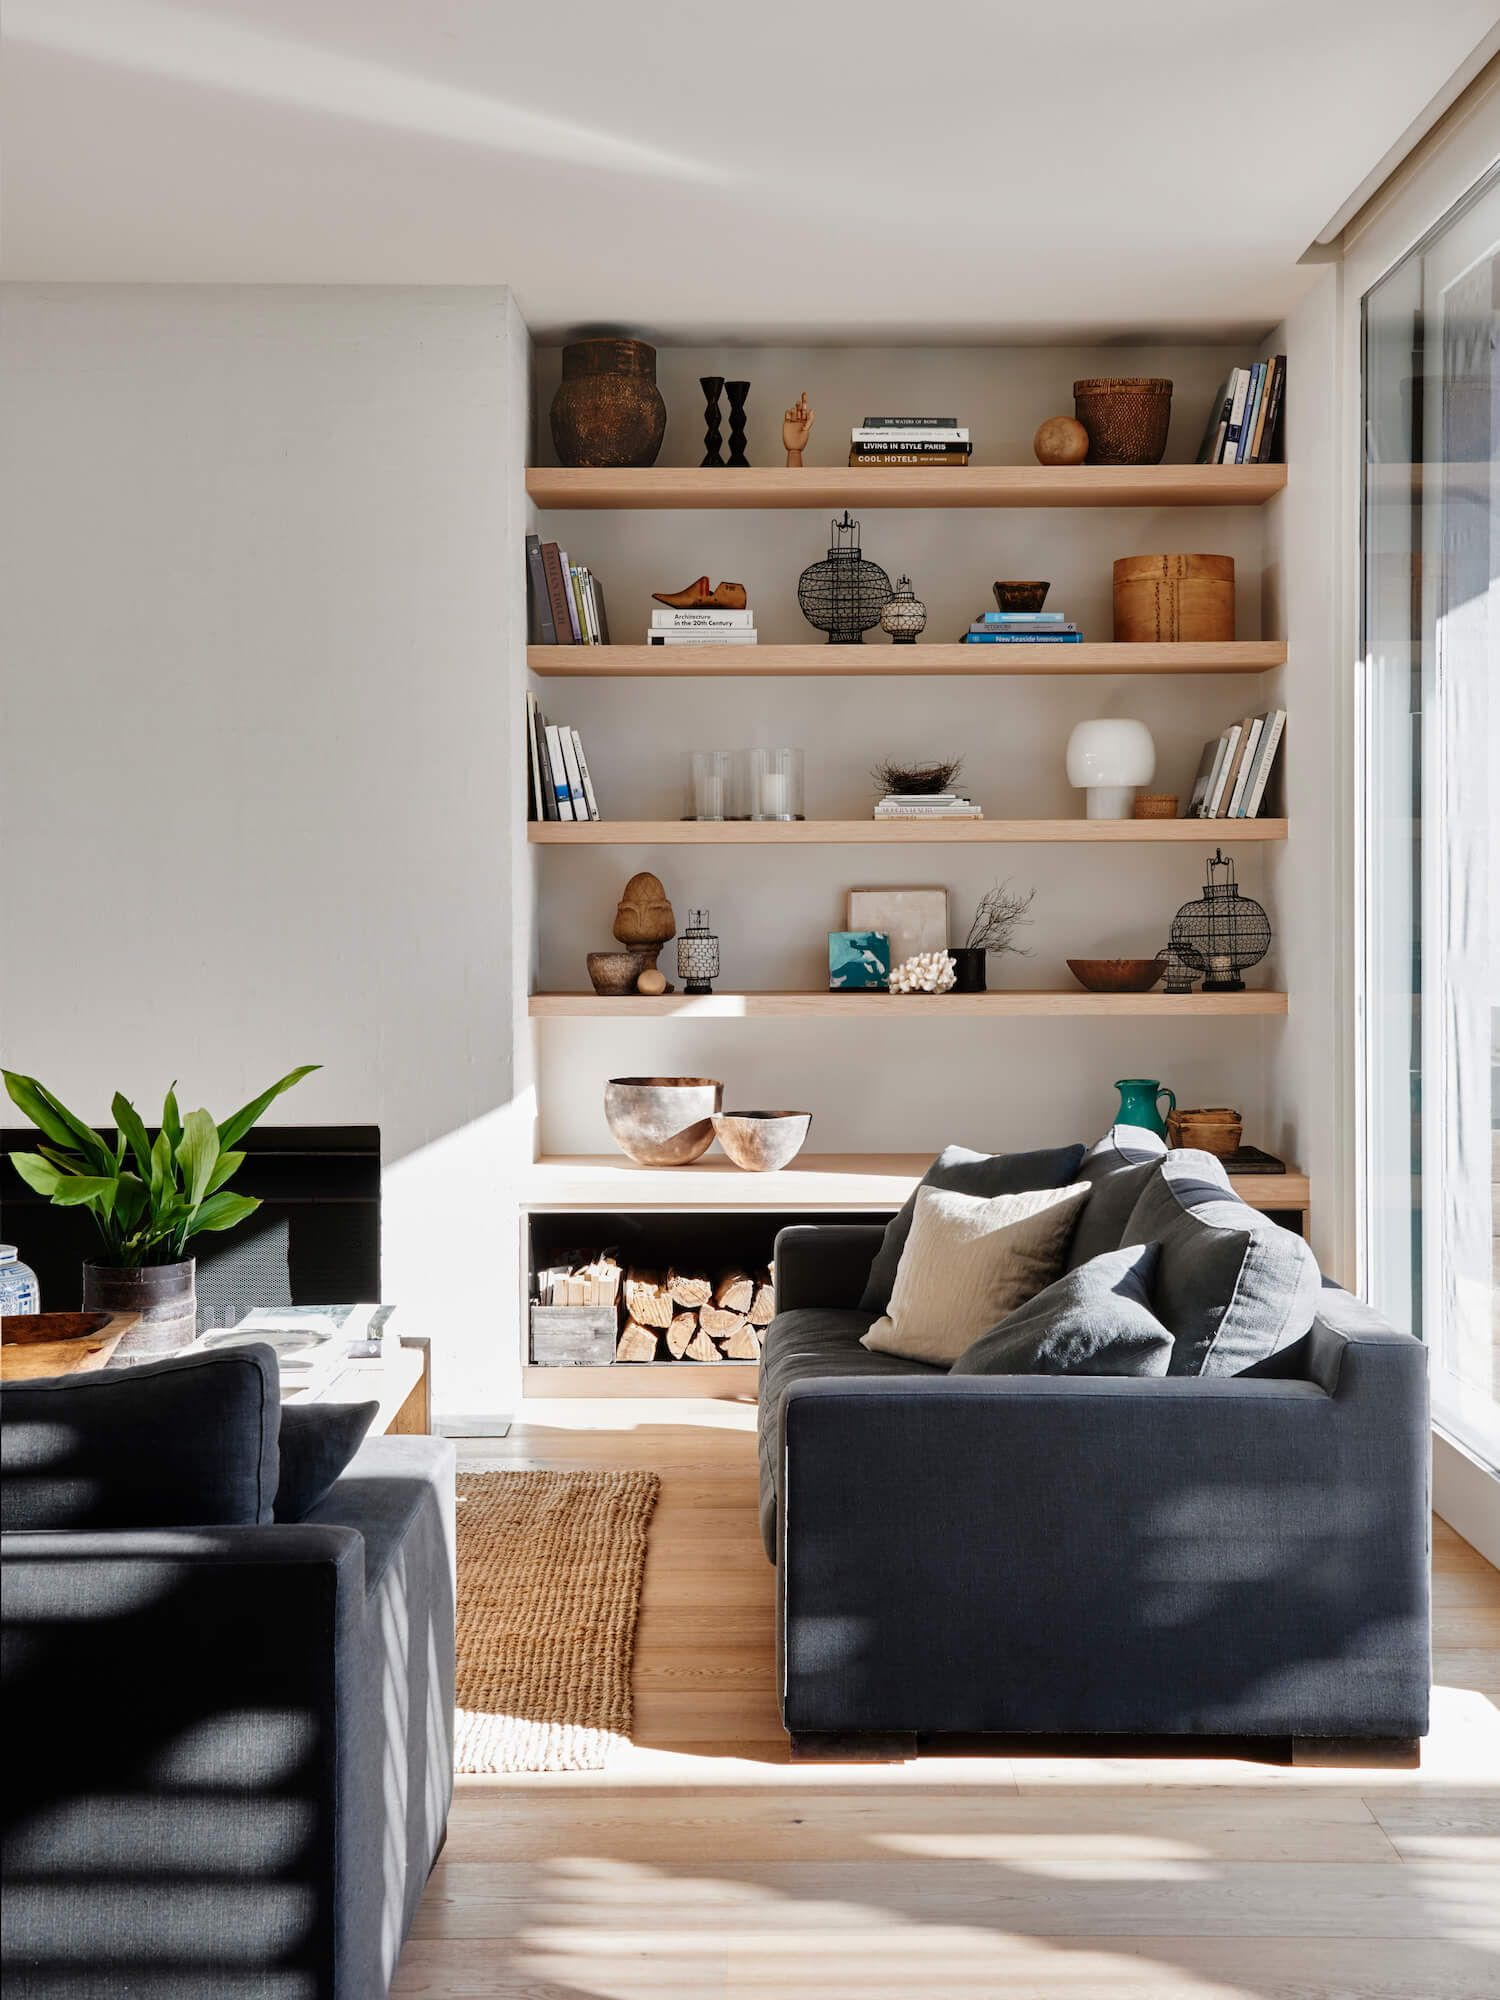 How To Style Bookshelves On A Budget